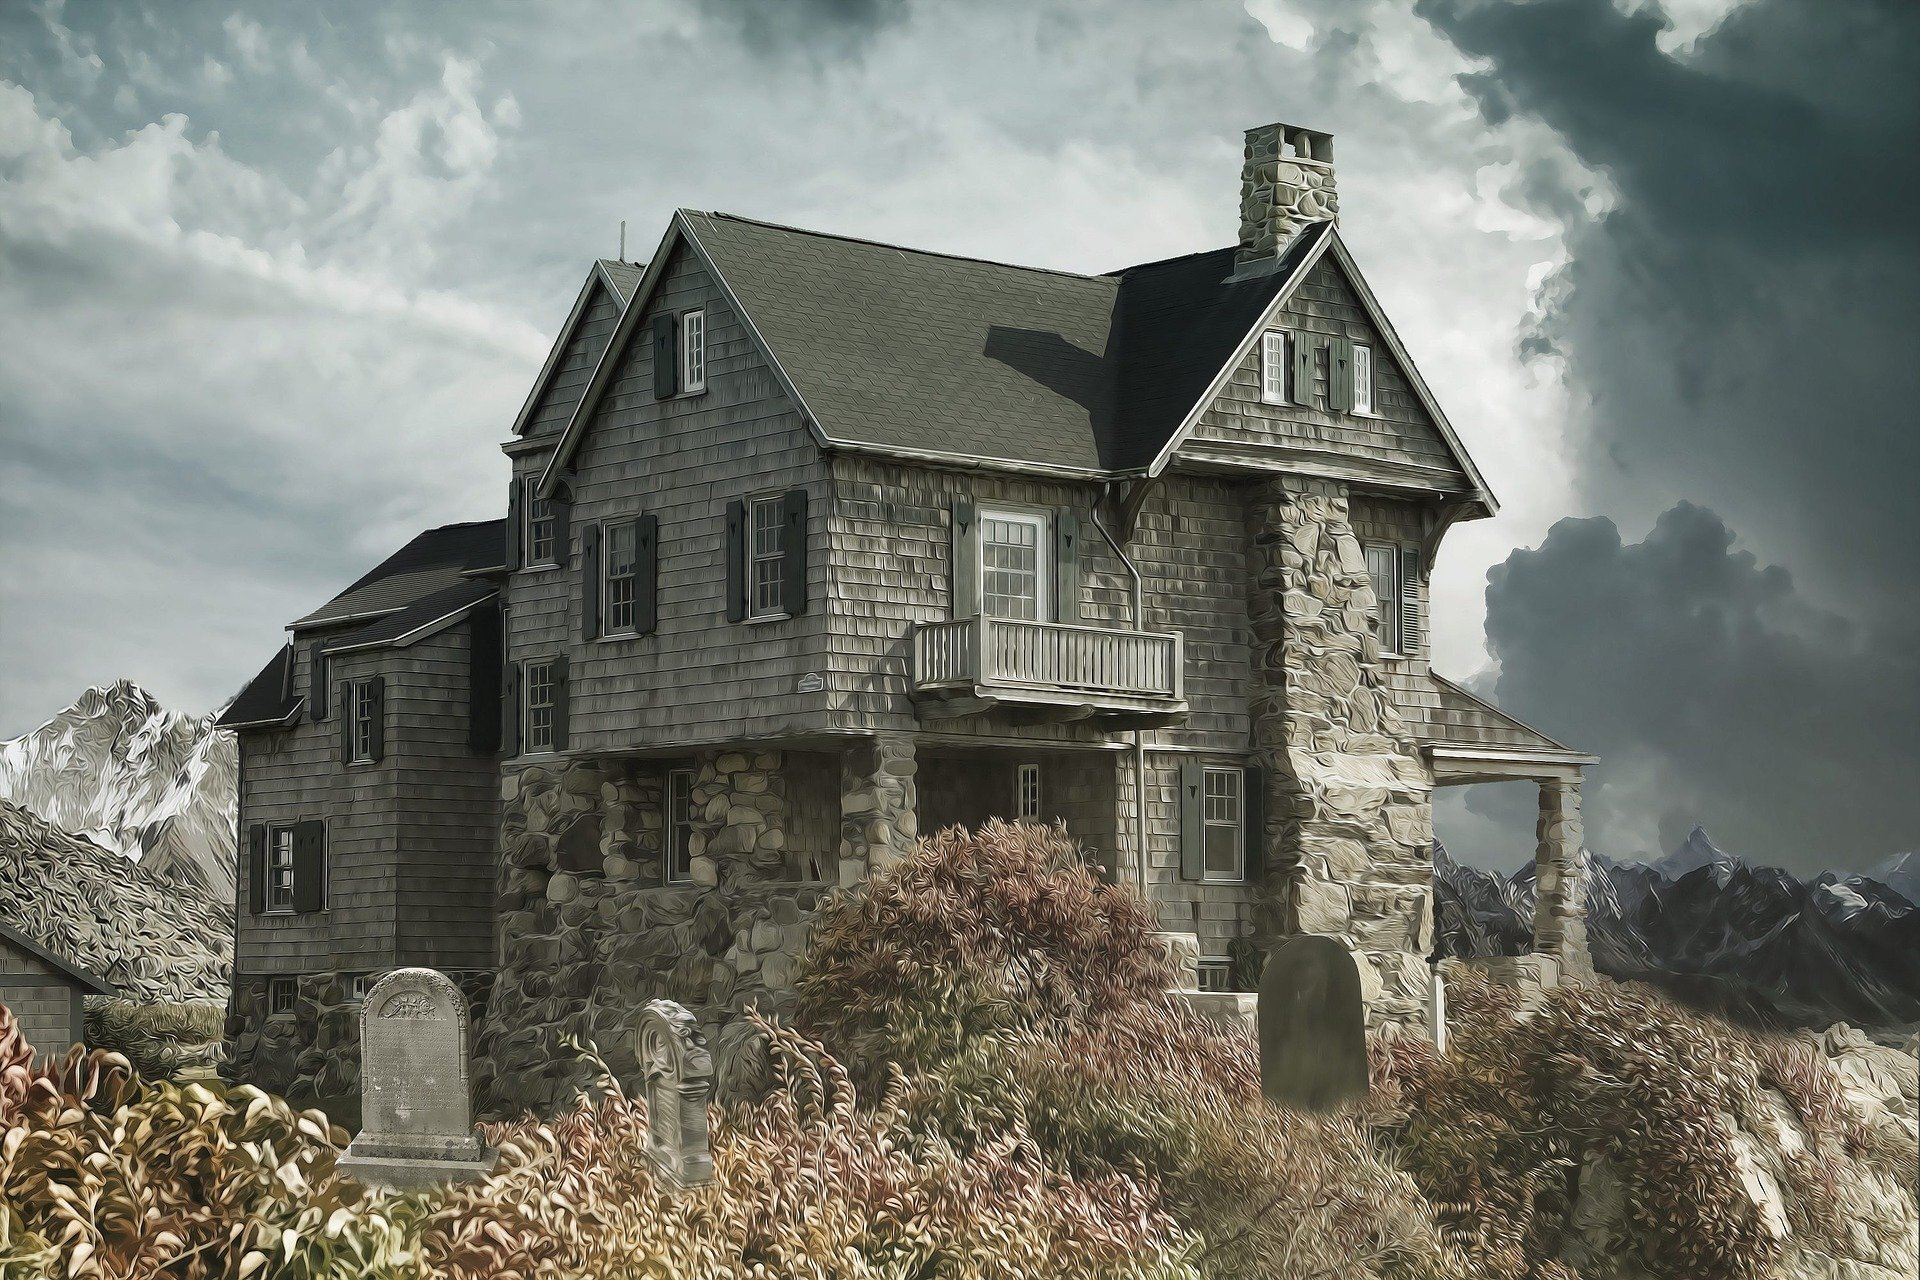 Photo of Haunted house researchers investigate the mystery of playing with fear